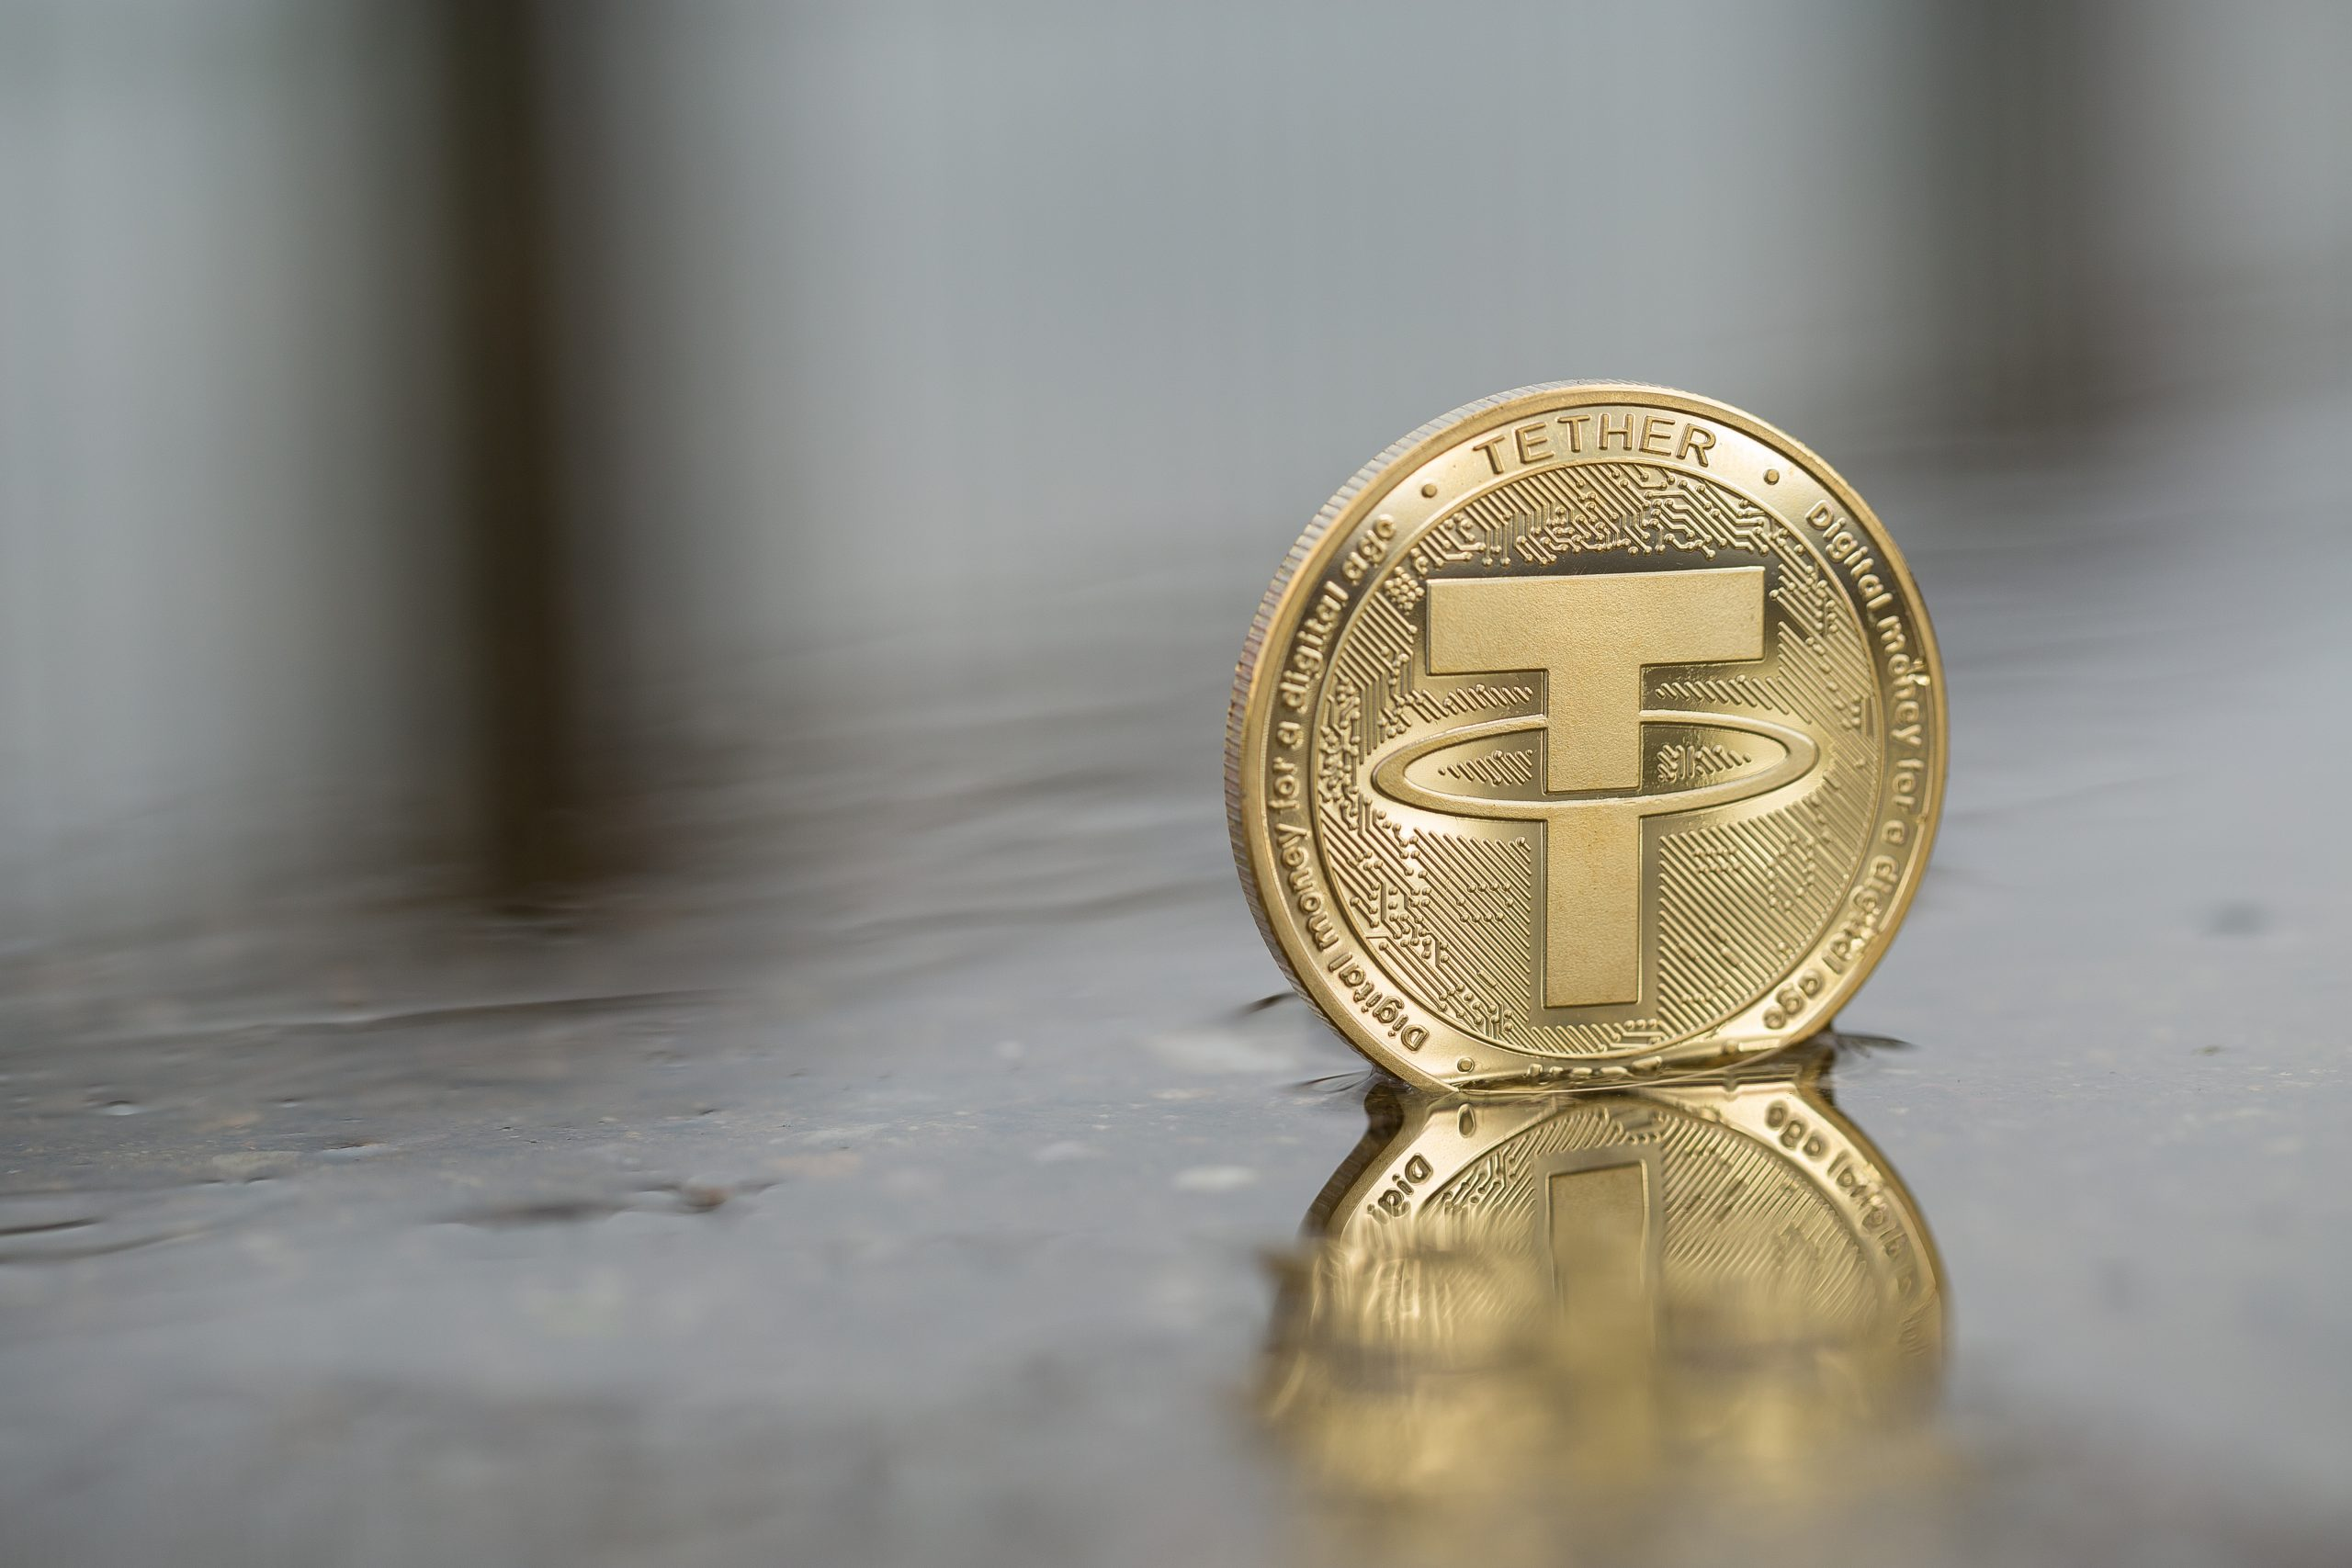 Is Tether Wonderful a Rip-off to Enrich Bitcoin Consumers?